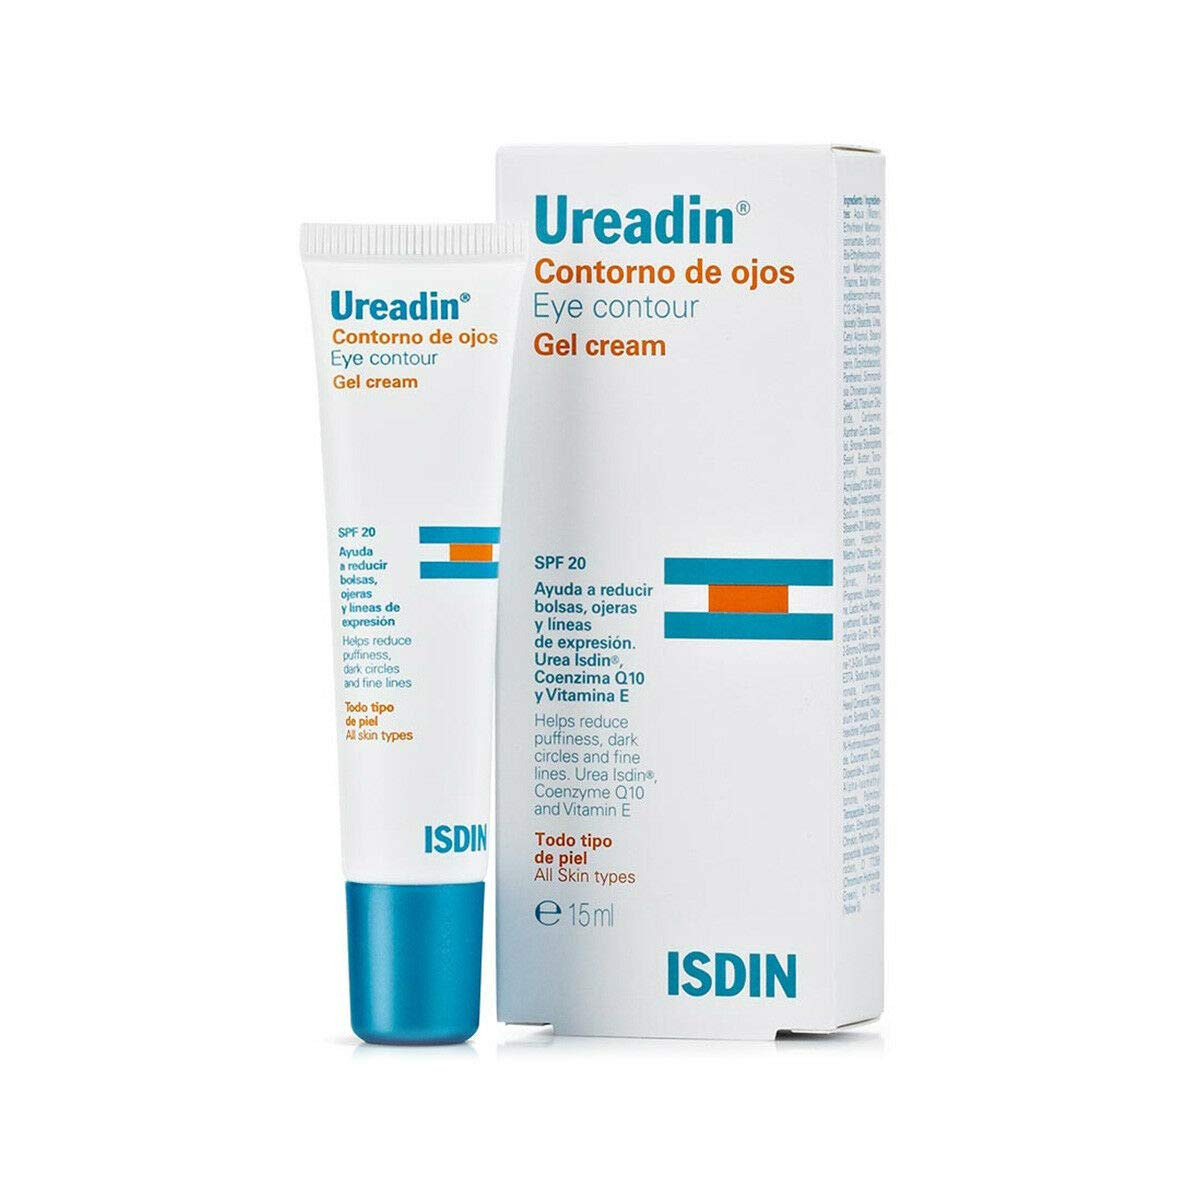 Amazon.com: Isdin ureadin uradin anti-aging eye contour ...